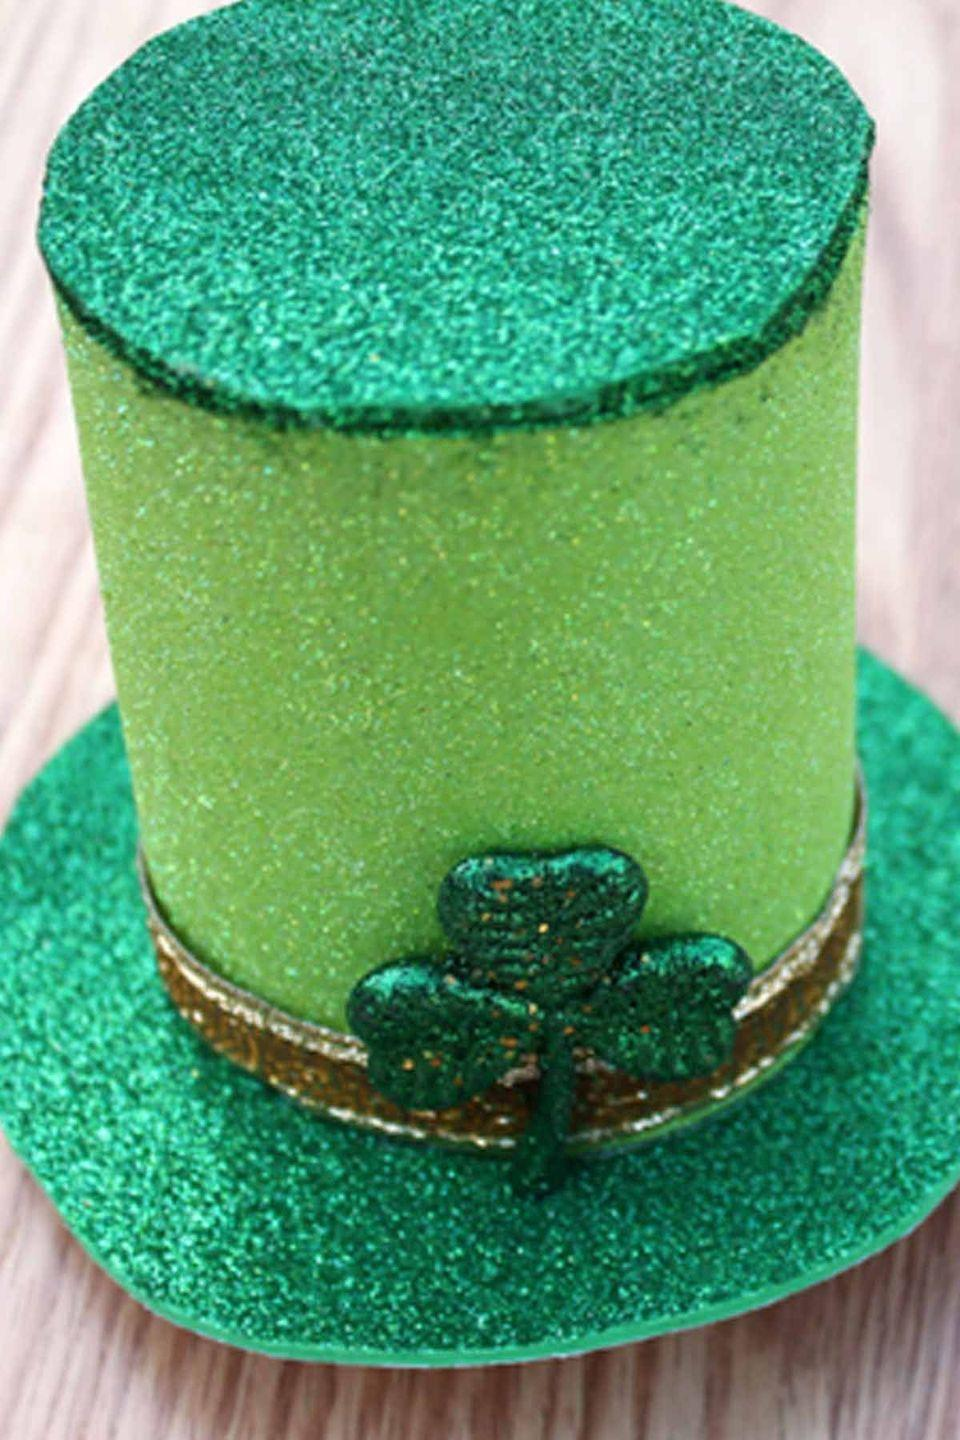 """<p><a href=""""https://www.womansday.com/style/fashion/"""" rel=""""nofollow noopener"""" target=""""_blank"""" data-ylk=""""slk:How adorable"""" class=""""link rapid-noclick-resp"""">How adorable</a> would these glittery top hats look on your kids?</p><p><em>Get the tutorial at <a href=""""http://www.creativegreenliving.com/2013/03/saint-patricks-day-crafting-little.html"""" rel=""""nofollow noopener"""" target=""""_blank"""" data-ylk=""""slk:Creative Green Living"""" class=""""link rapid-noclick-resp"""">Creative Green Living</a>.</em> </p>"""